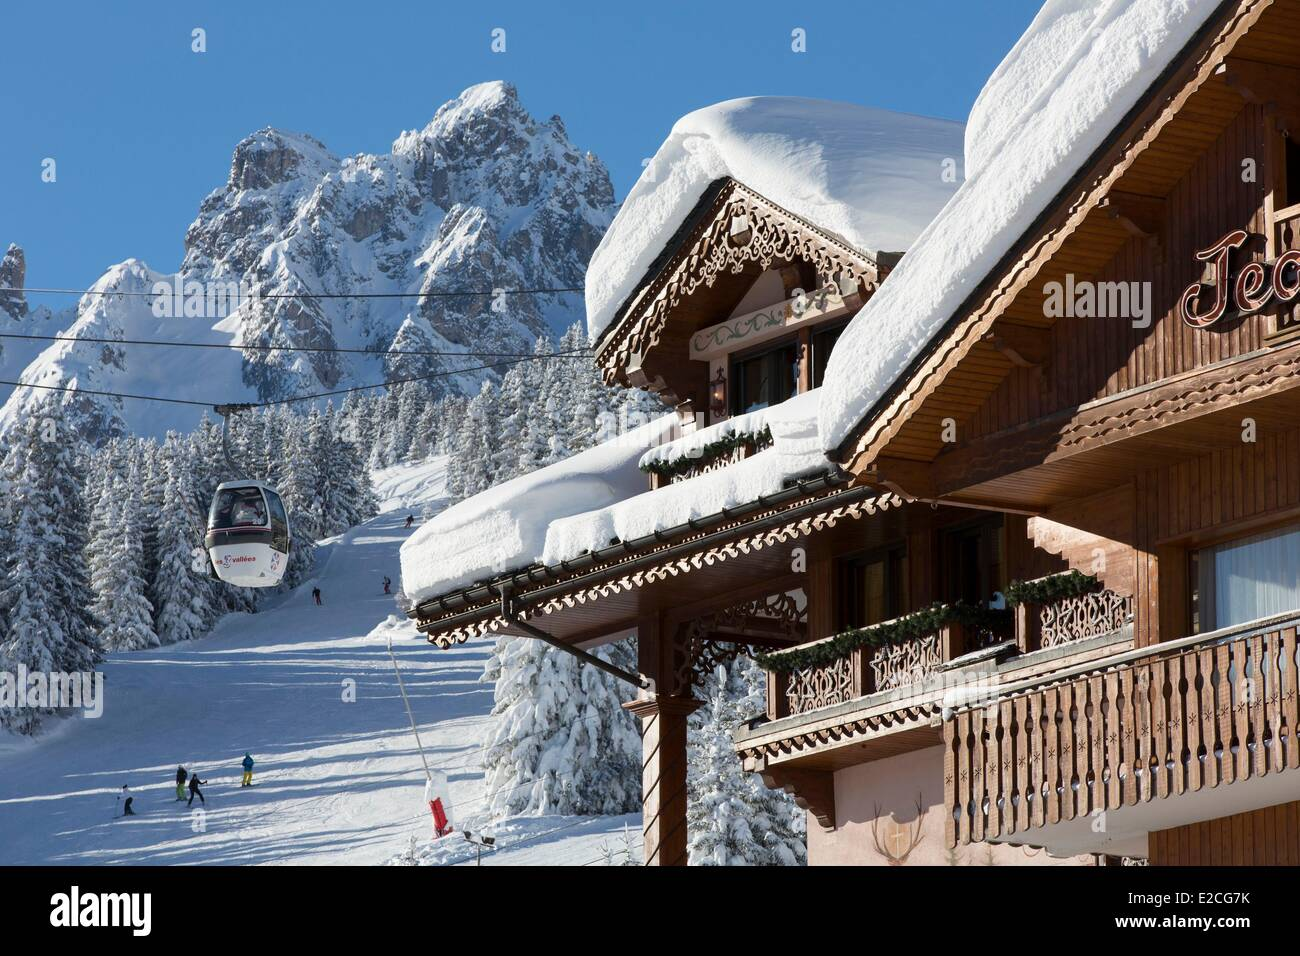 Courchevel 1850 Three Valleys France Ski Resort With View Over